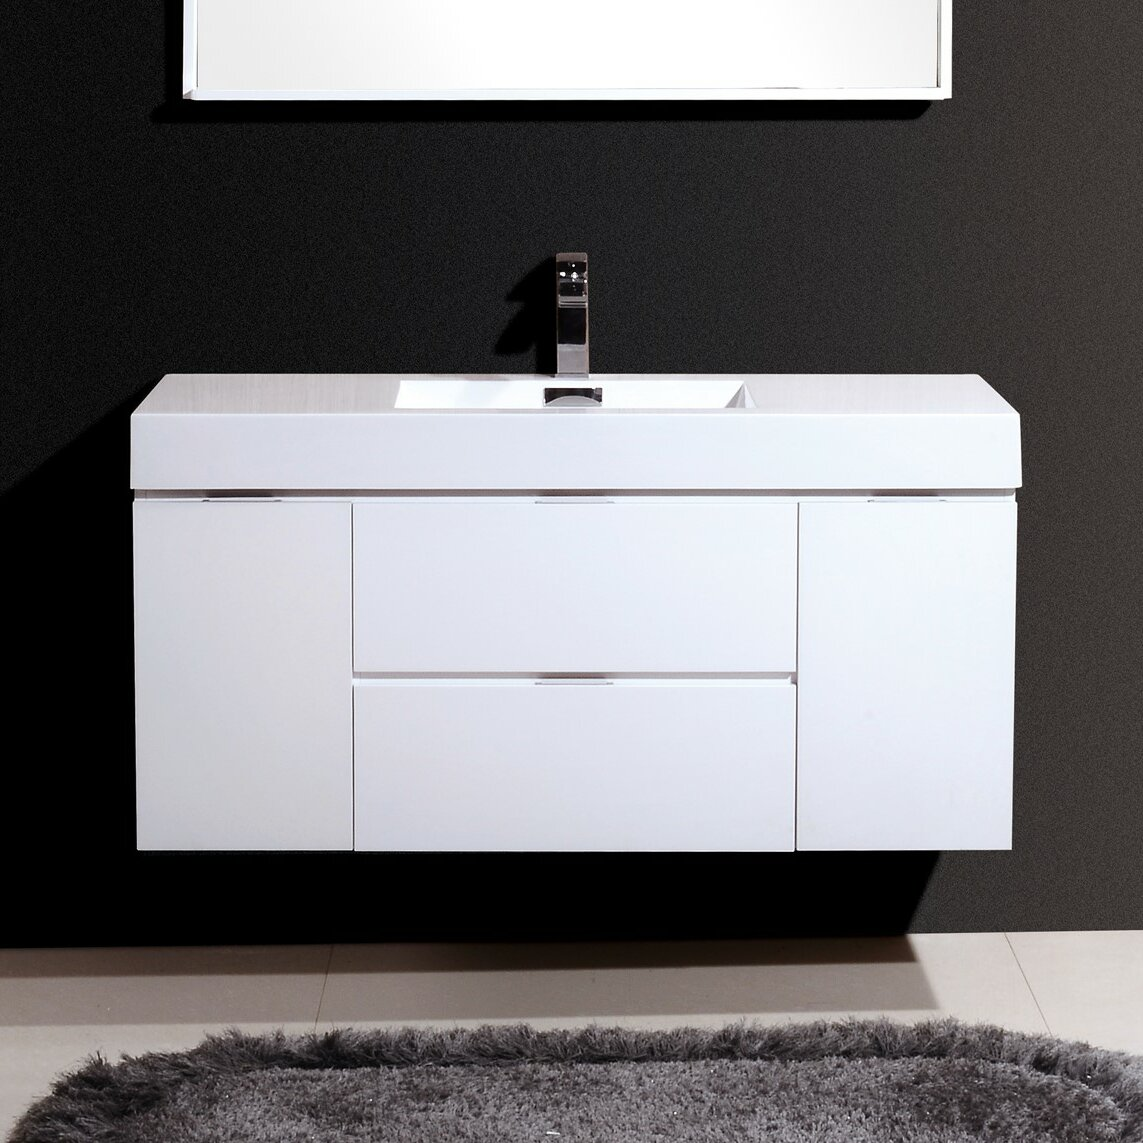 Kube bath bliss 48 single wall mount modern bathroom vanity set reviews wayfair - Kona modern bathroom vanity set ...